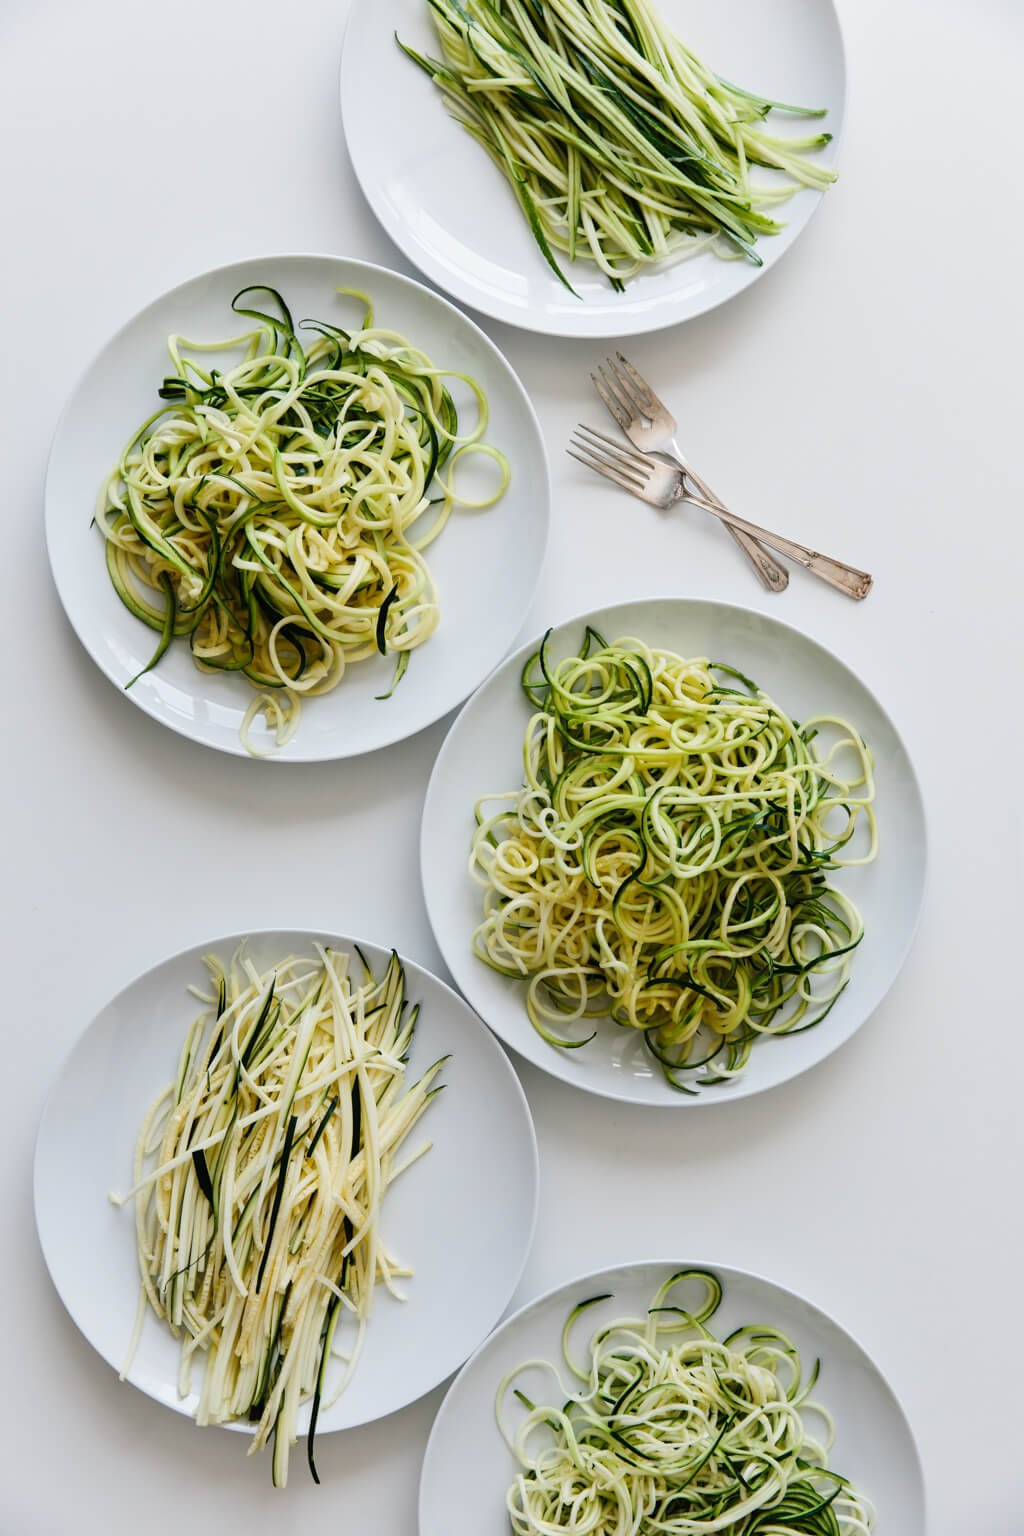 How To Make And Cook Zucchini Noodles The Most Popular Methods